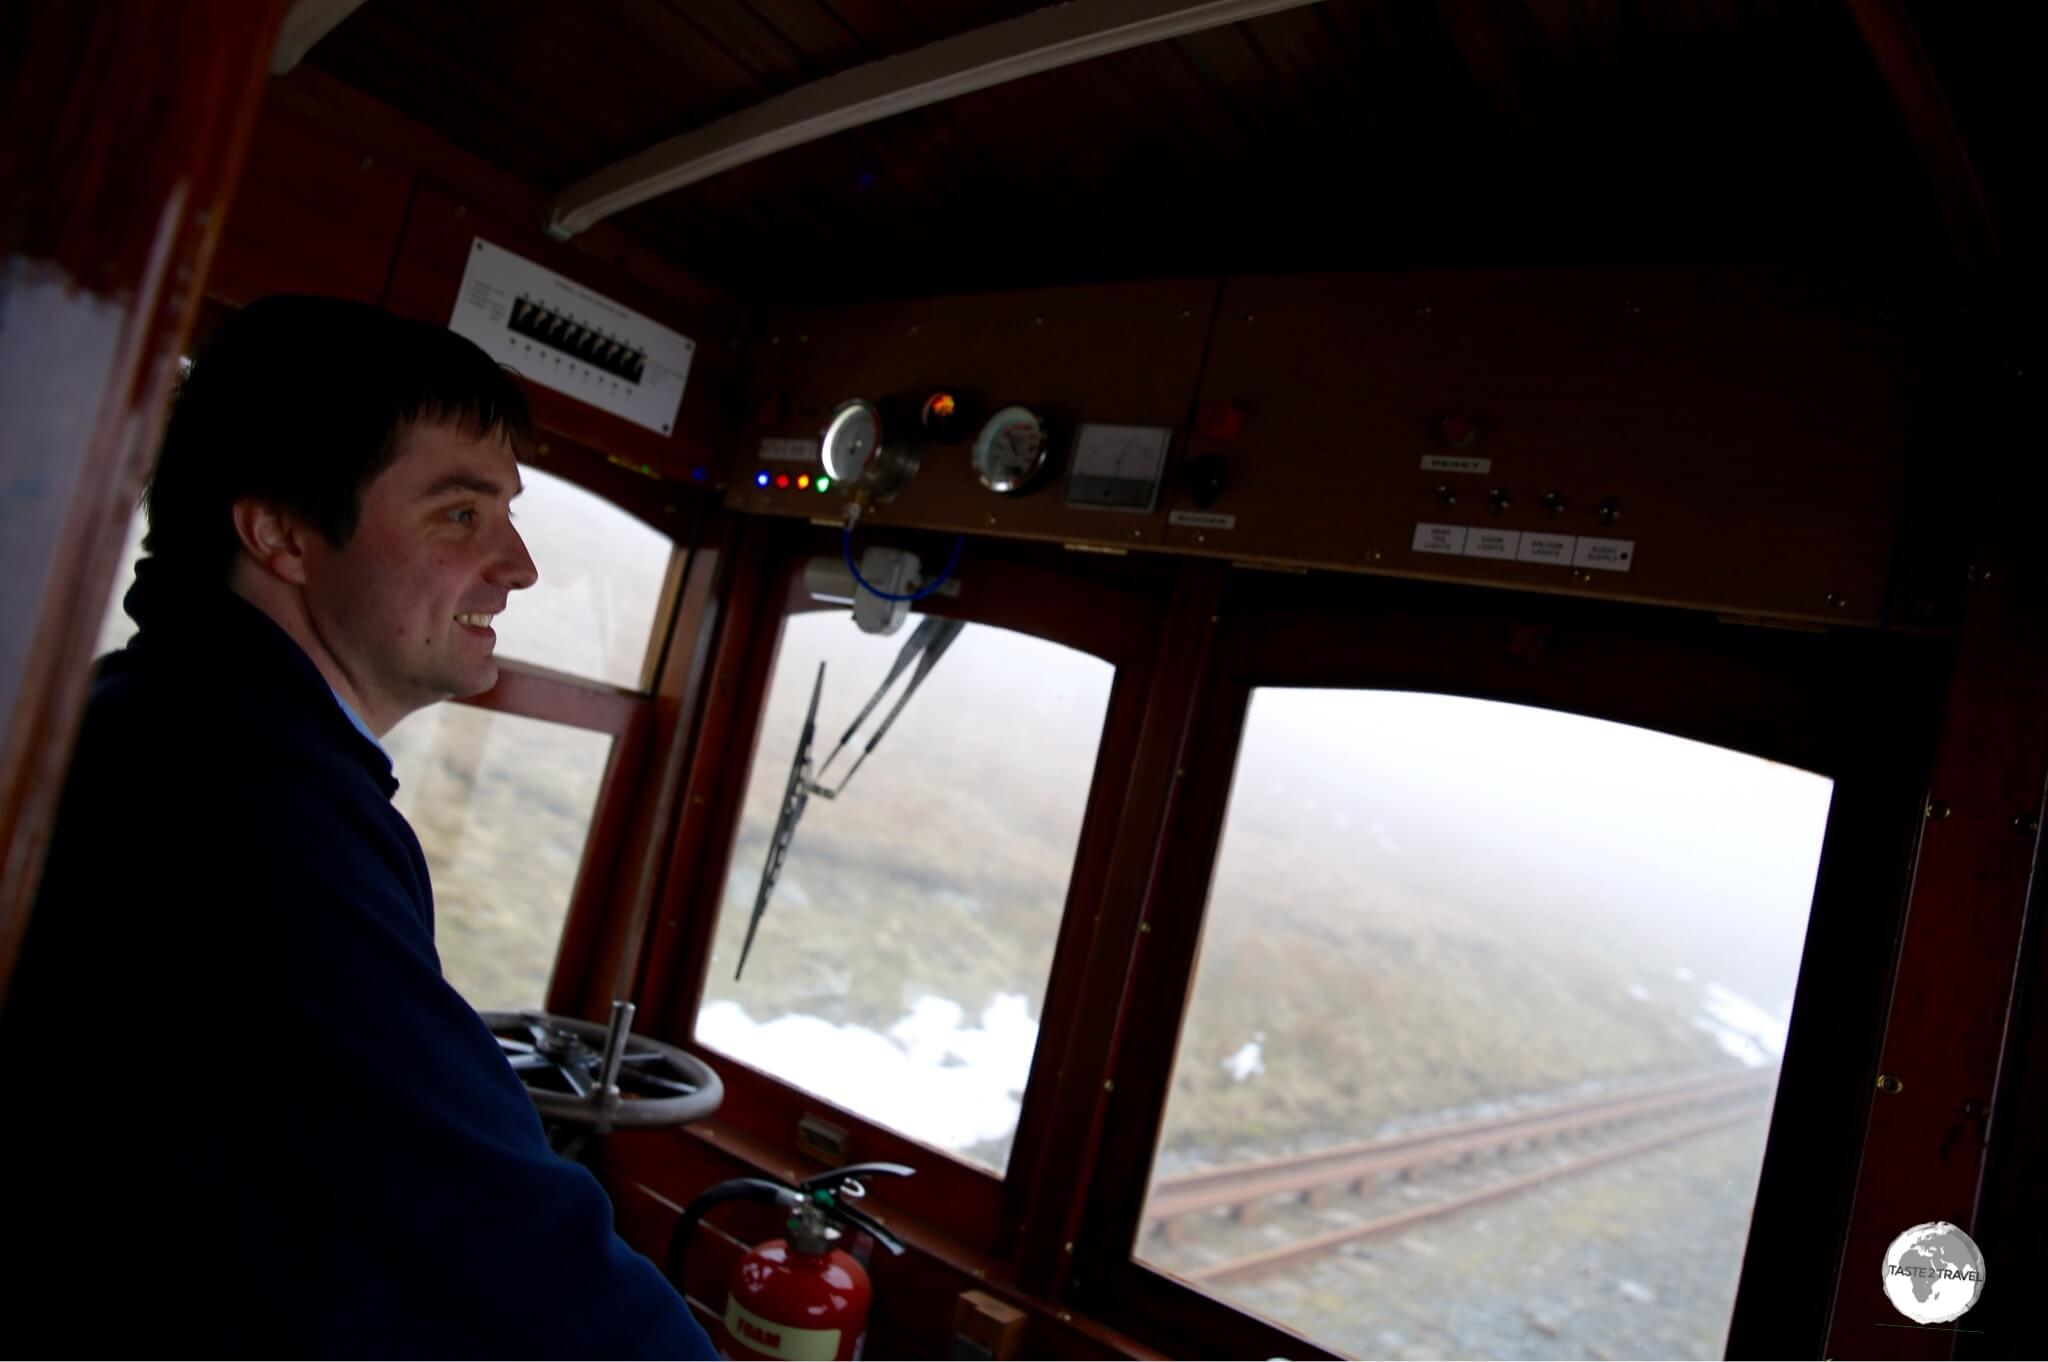 Travelling to the summit of Mt. Snaefell.